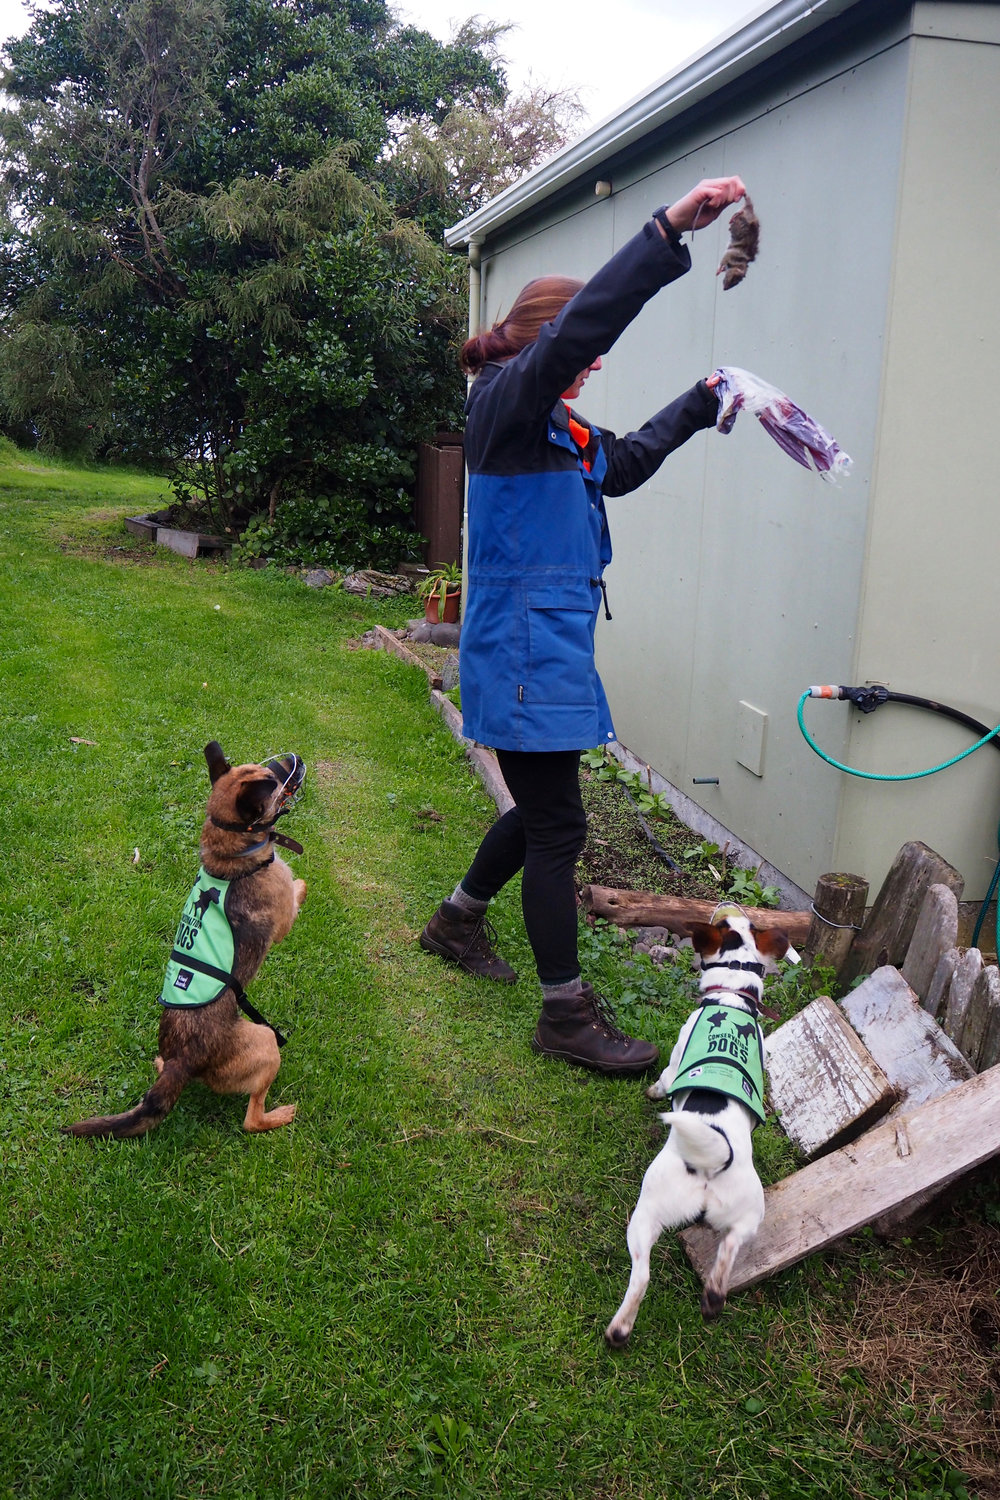 Image: Rodent detection dogs Bail and Odin excited to find a dead rat in a demonstration by handler Leona.